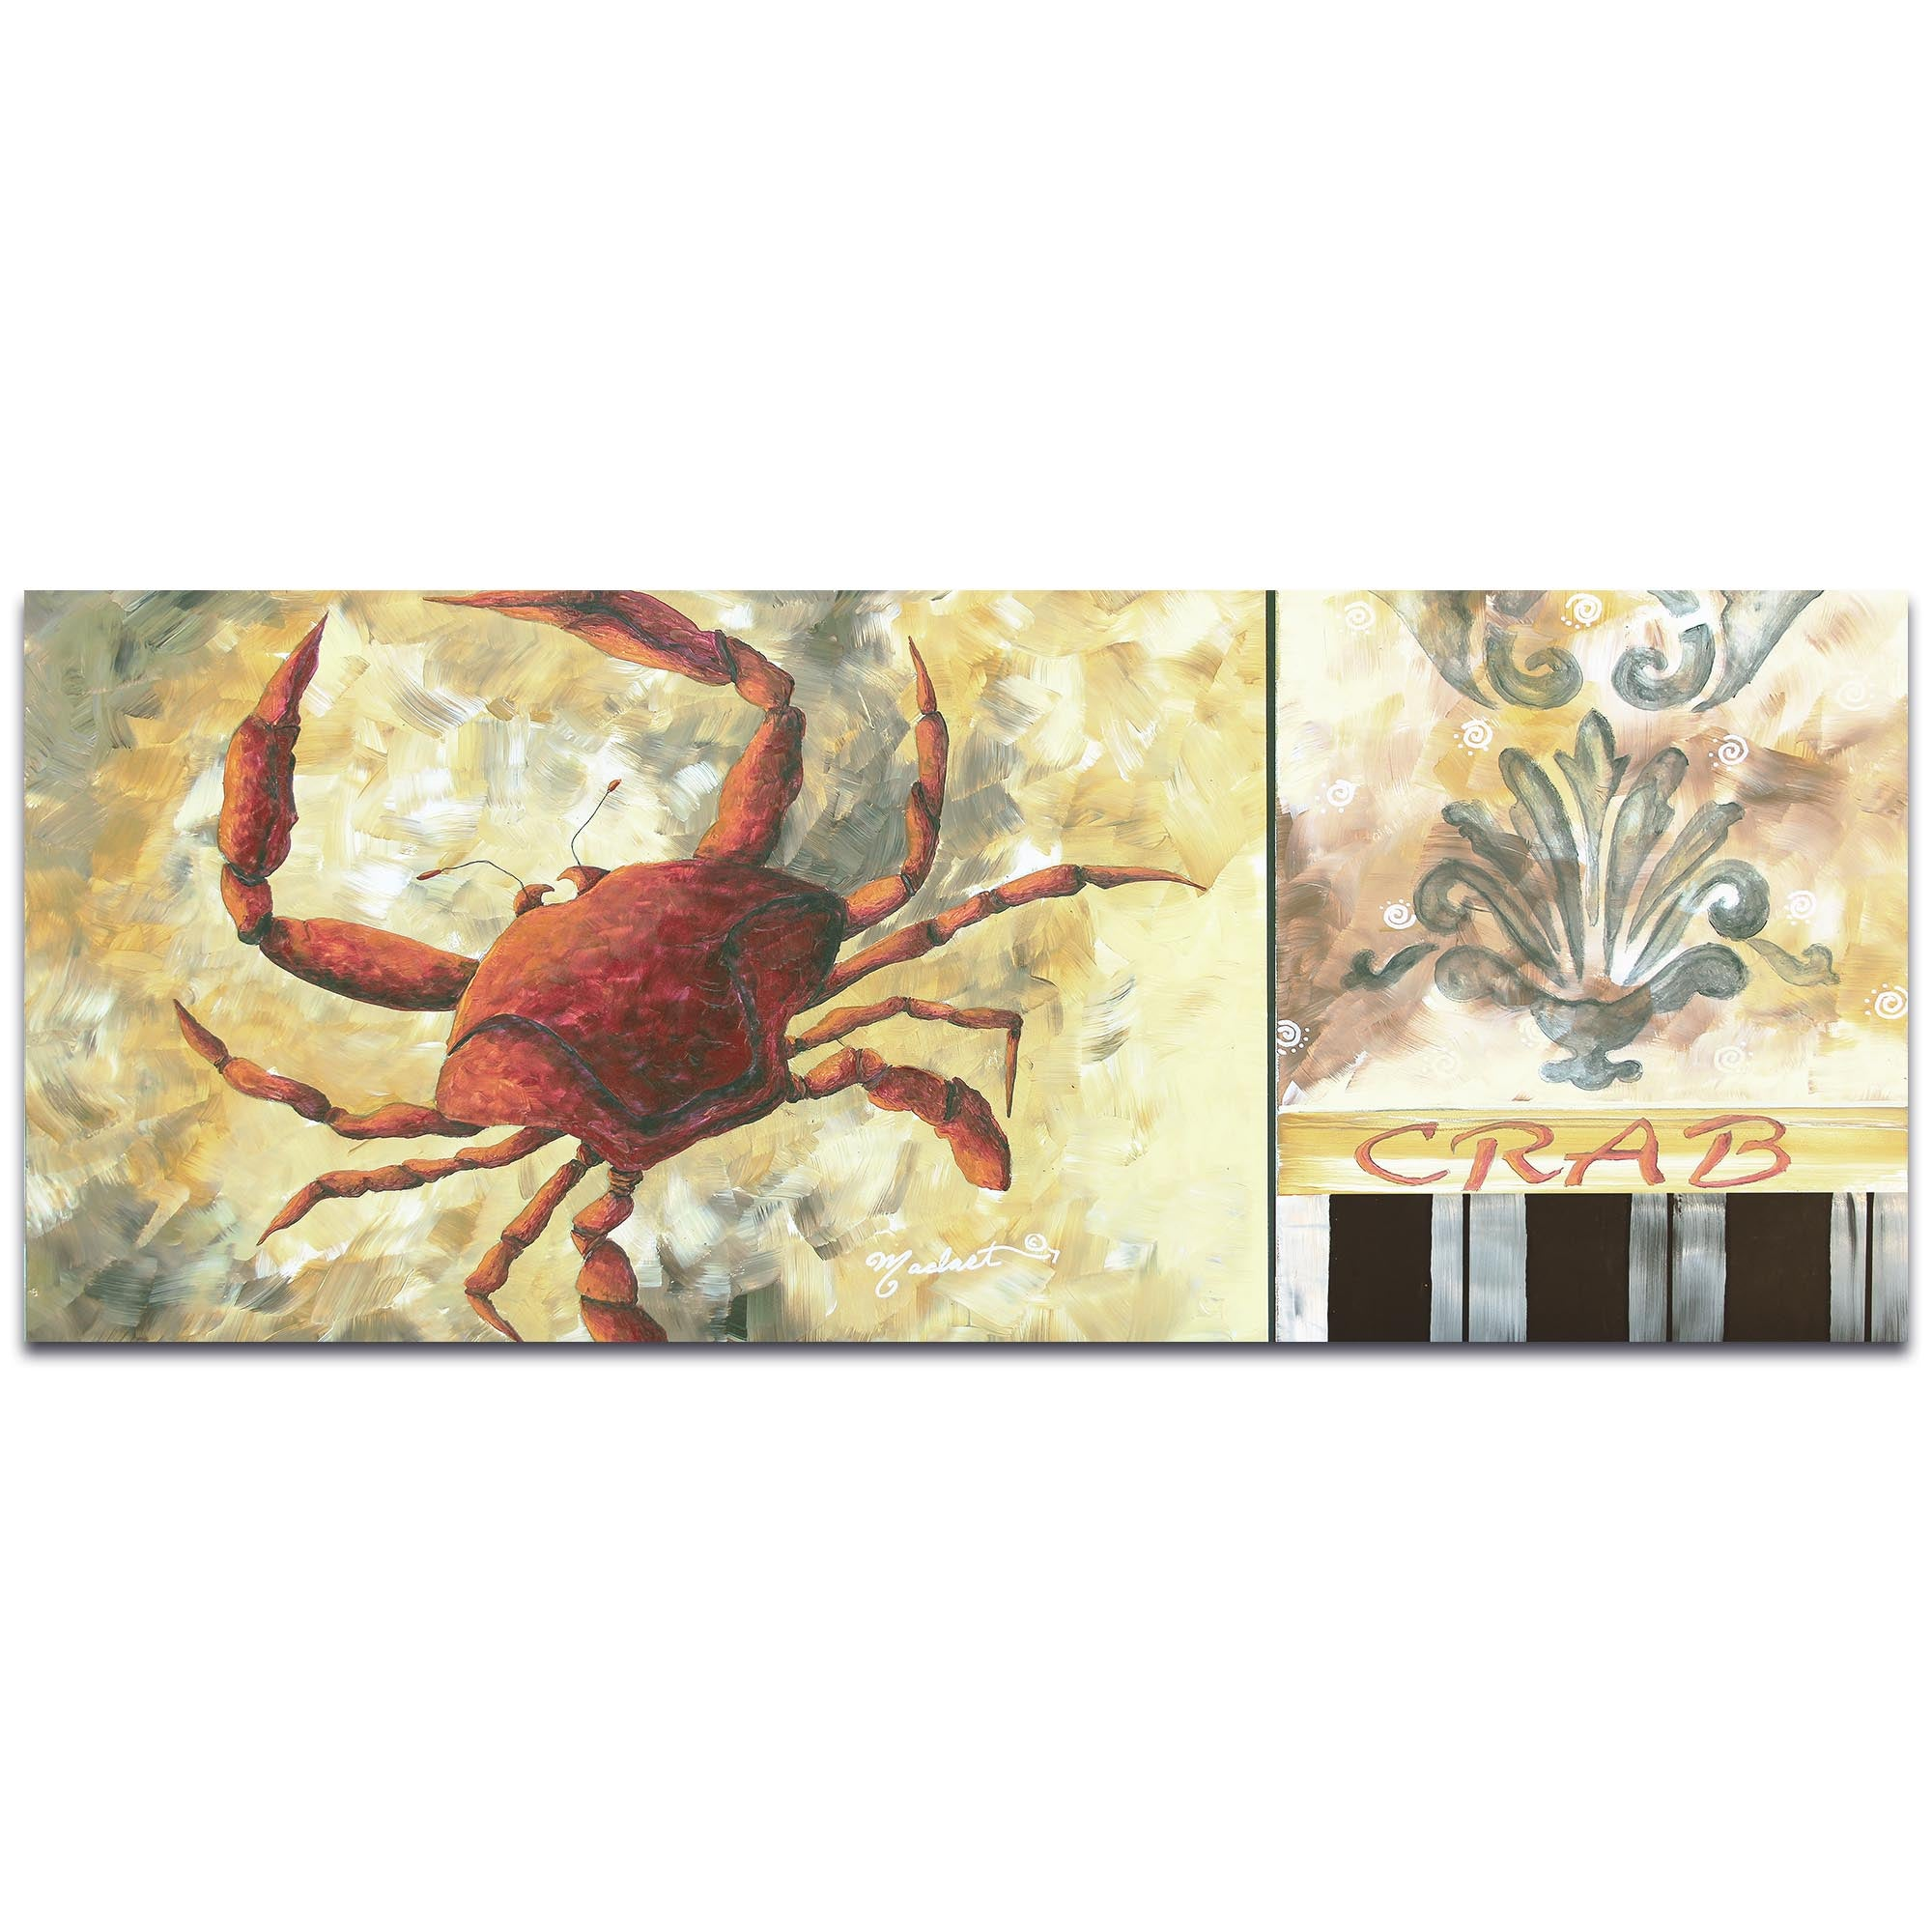 Crab by Megan Duncanson - Coastal Decor on Metal or Acrylic